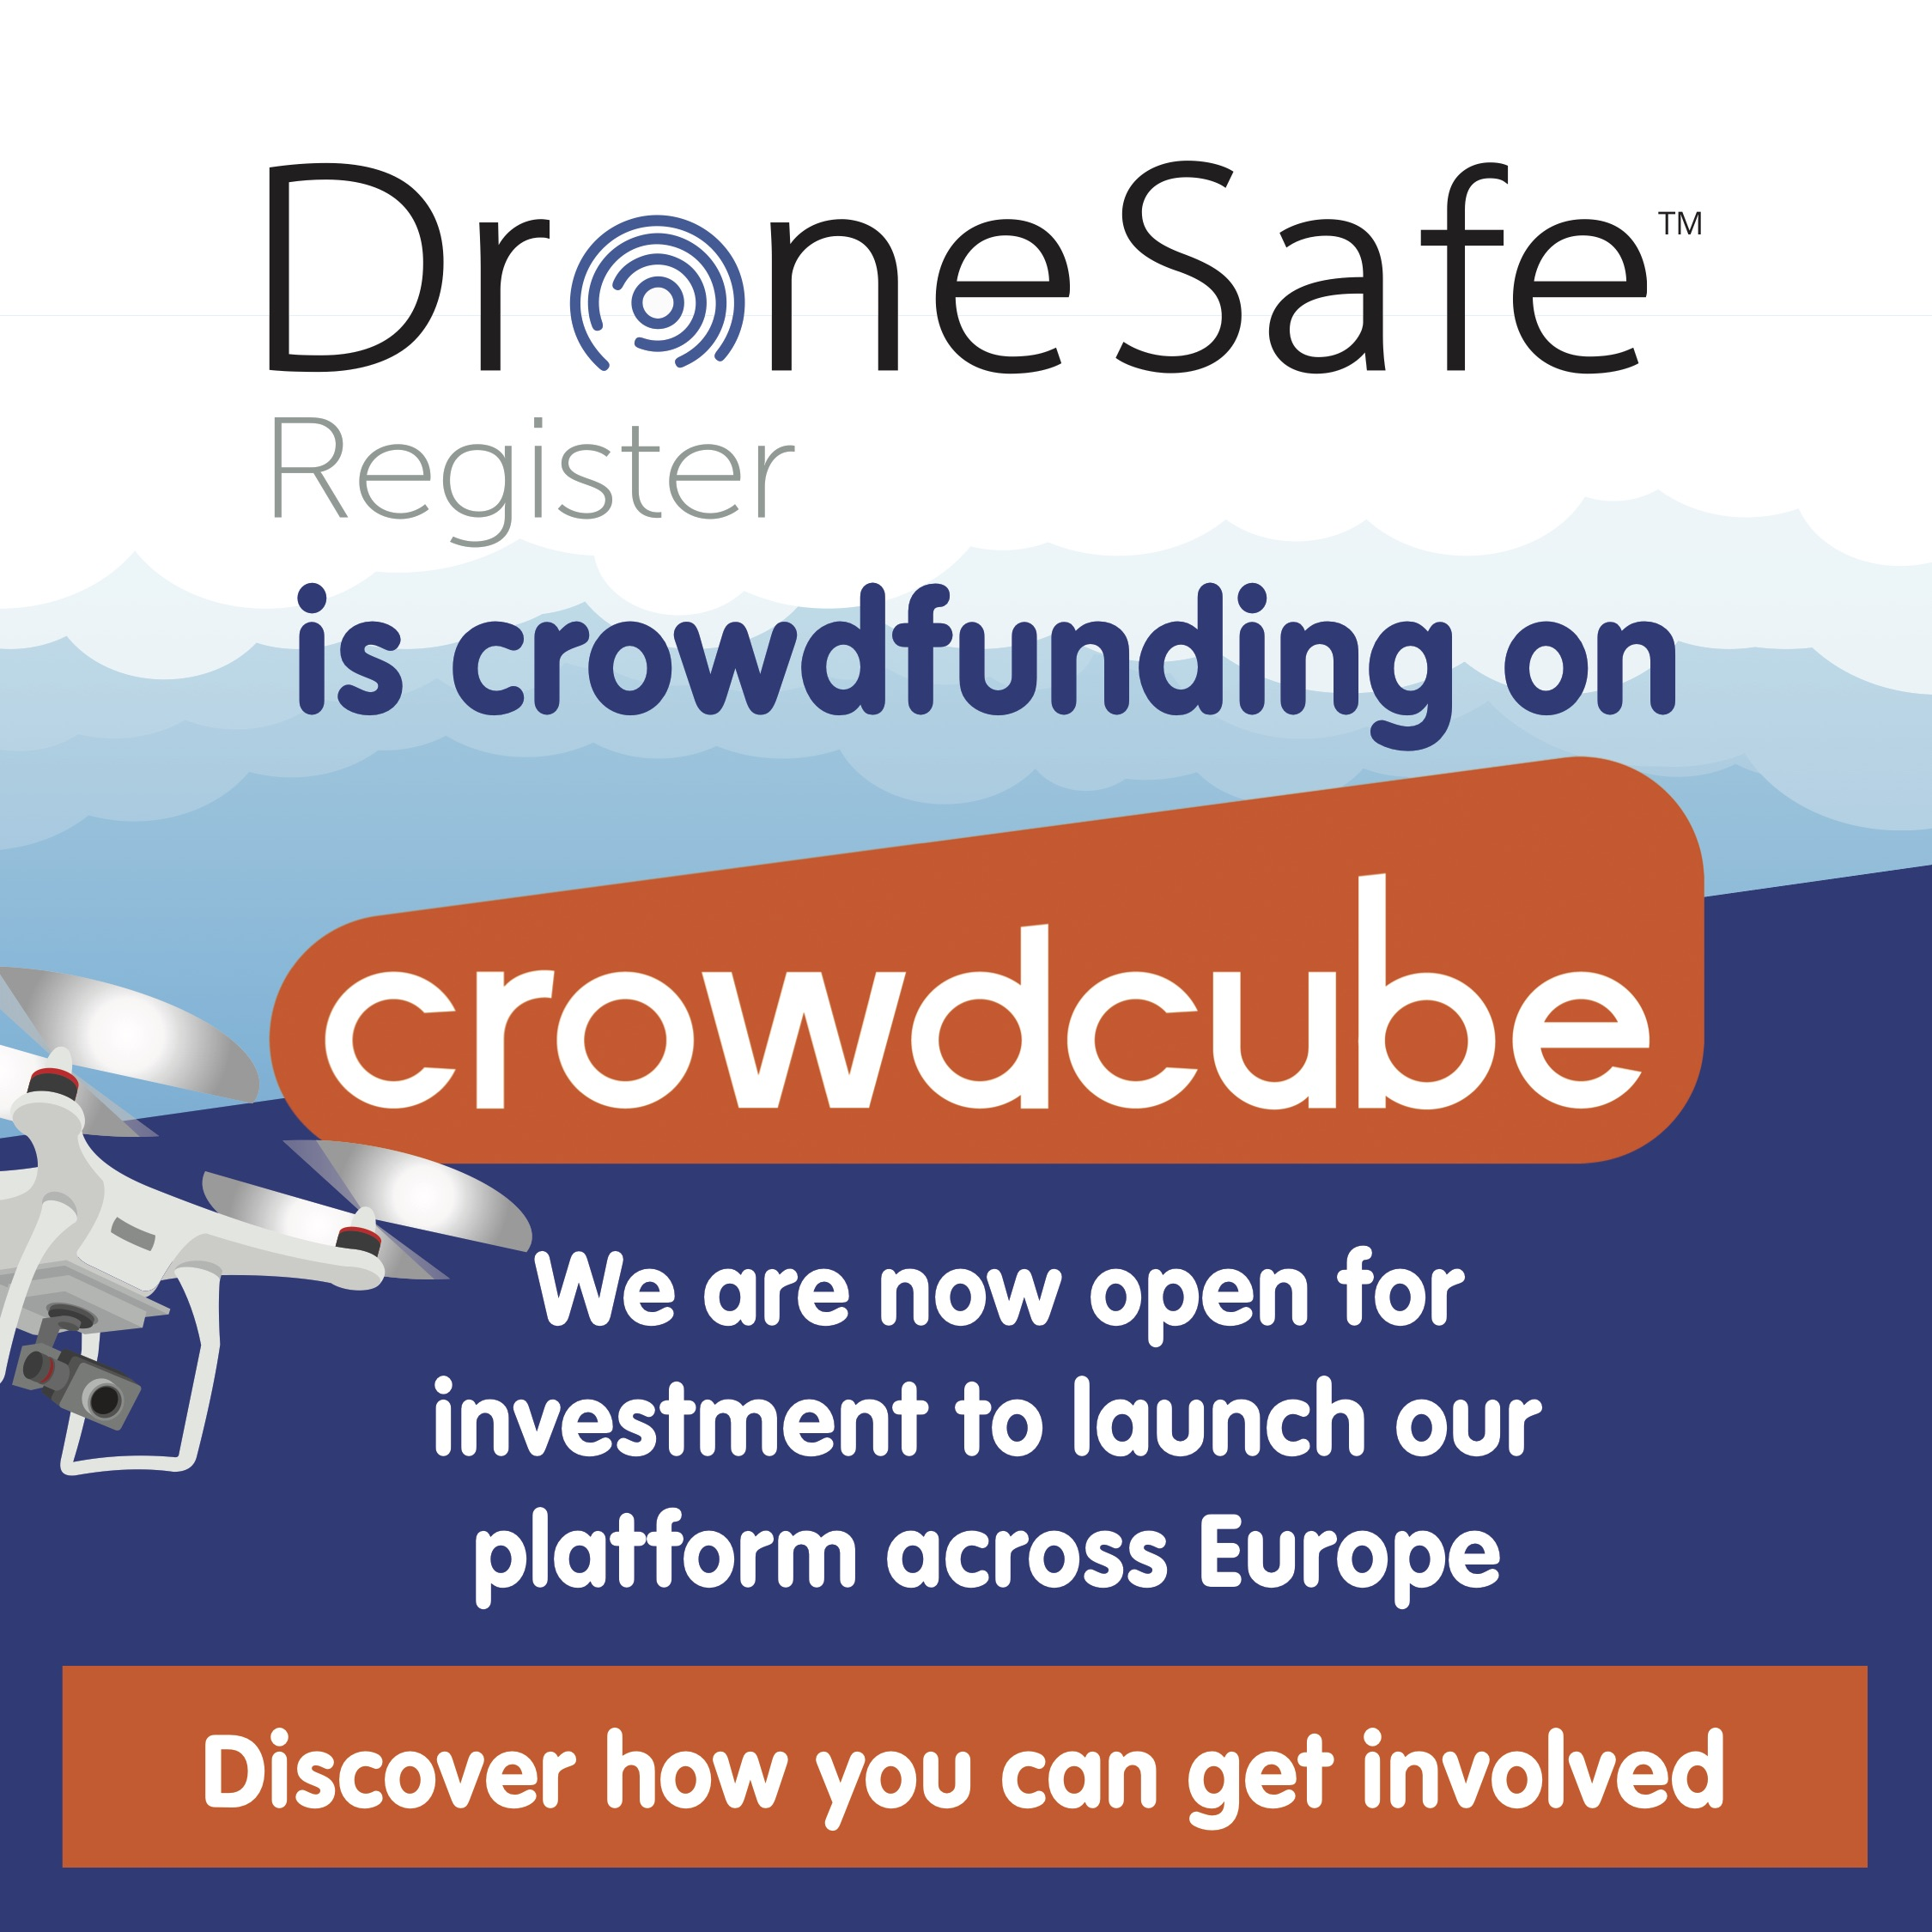 Drone Safe Register™ launches on Crowdcube